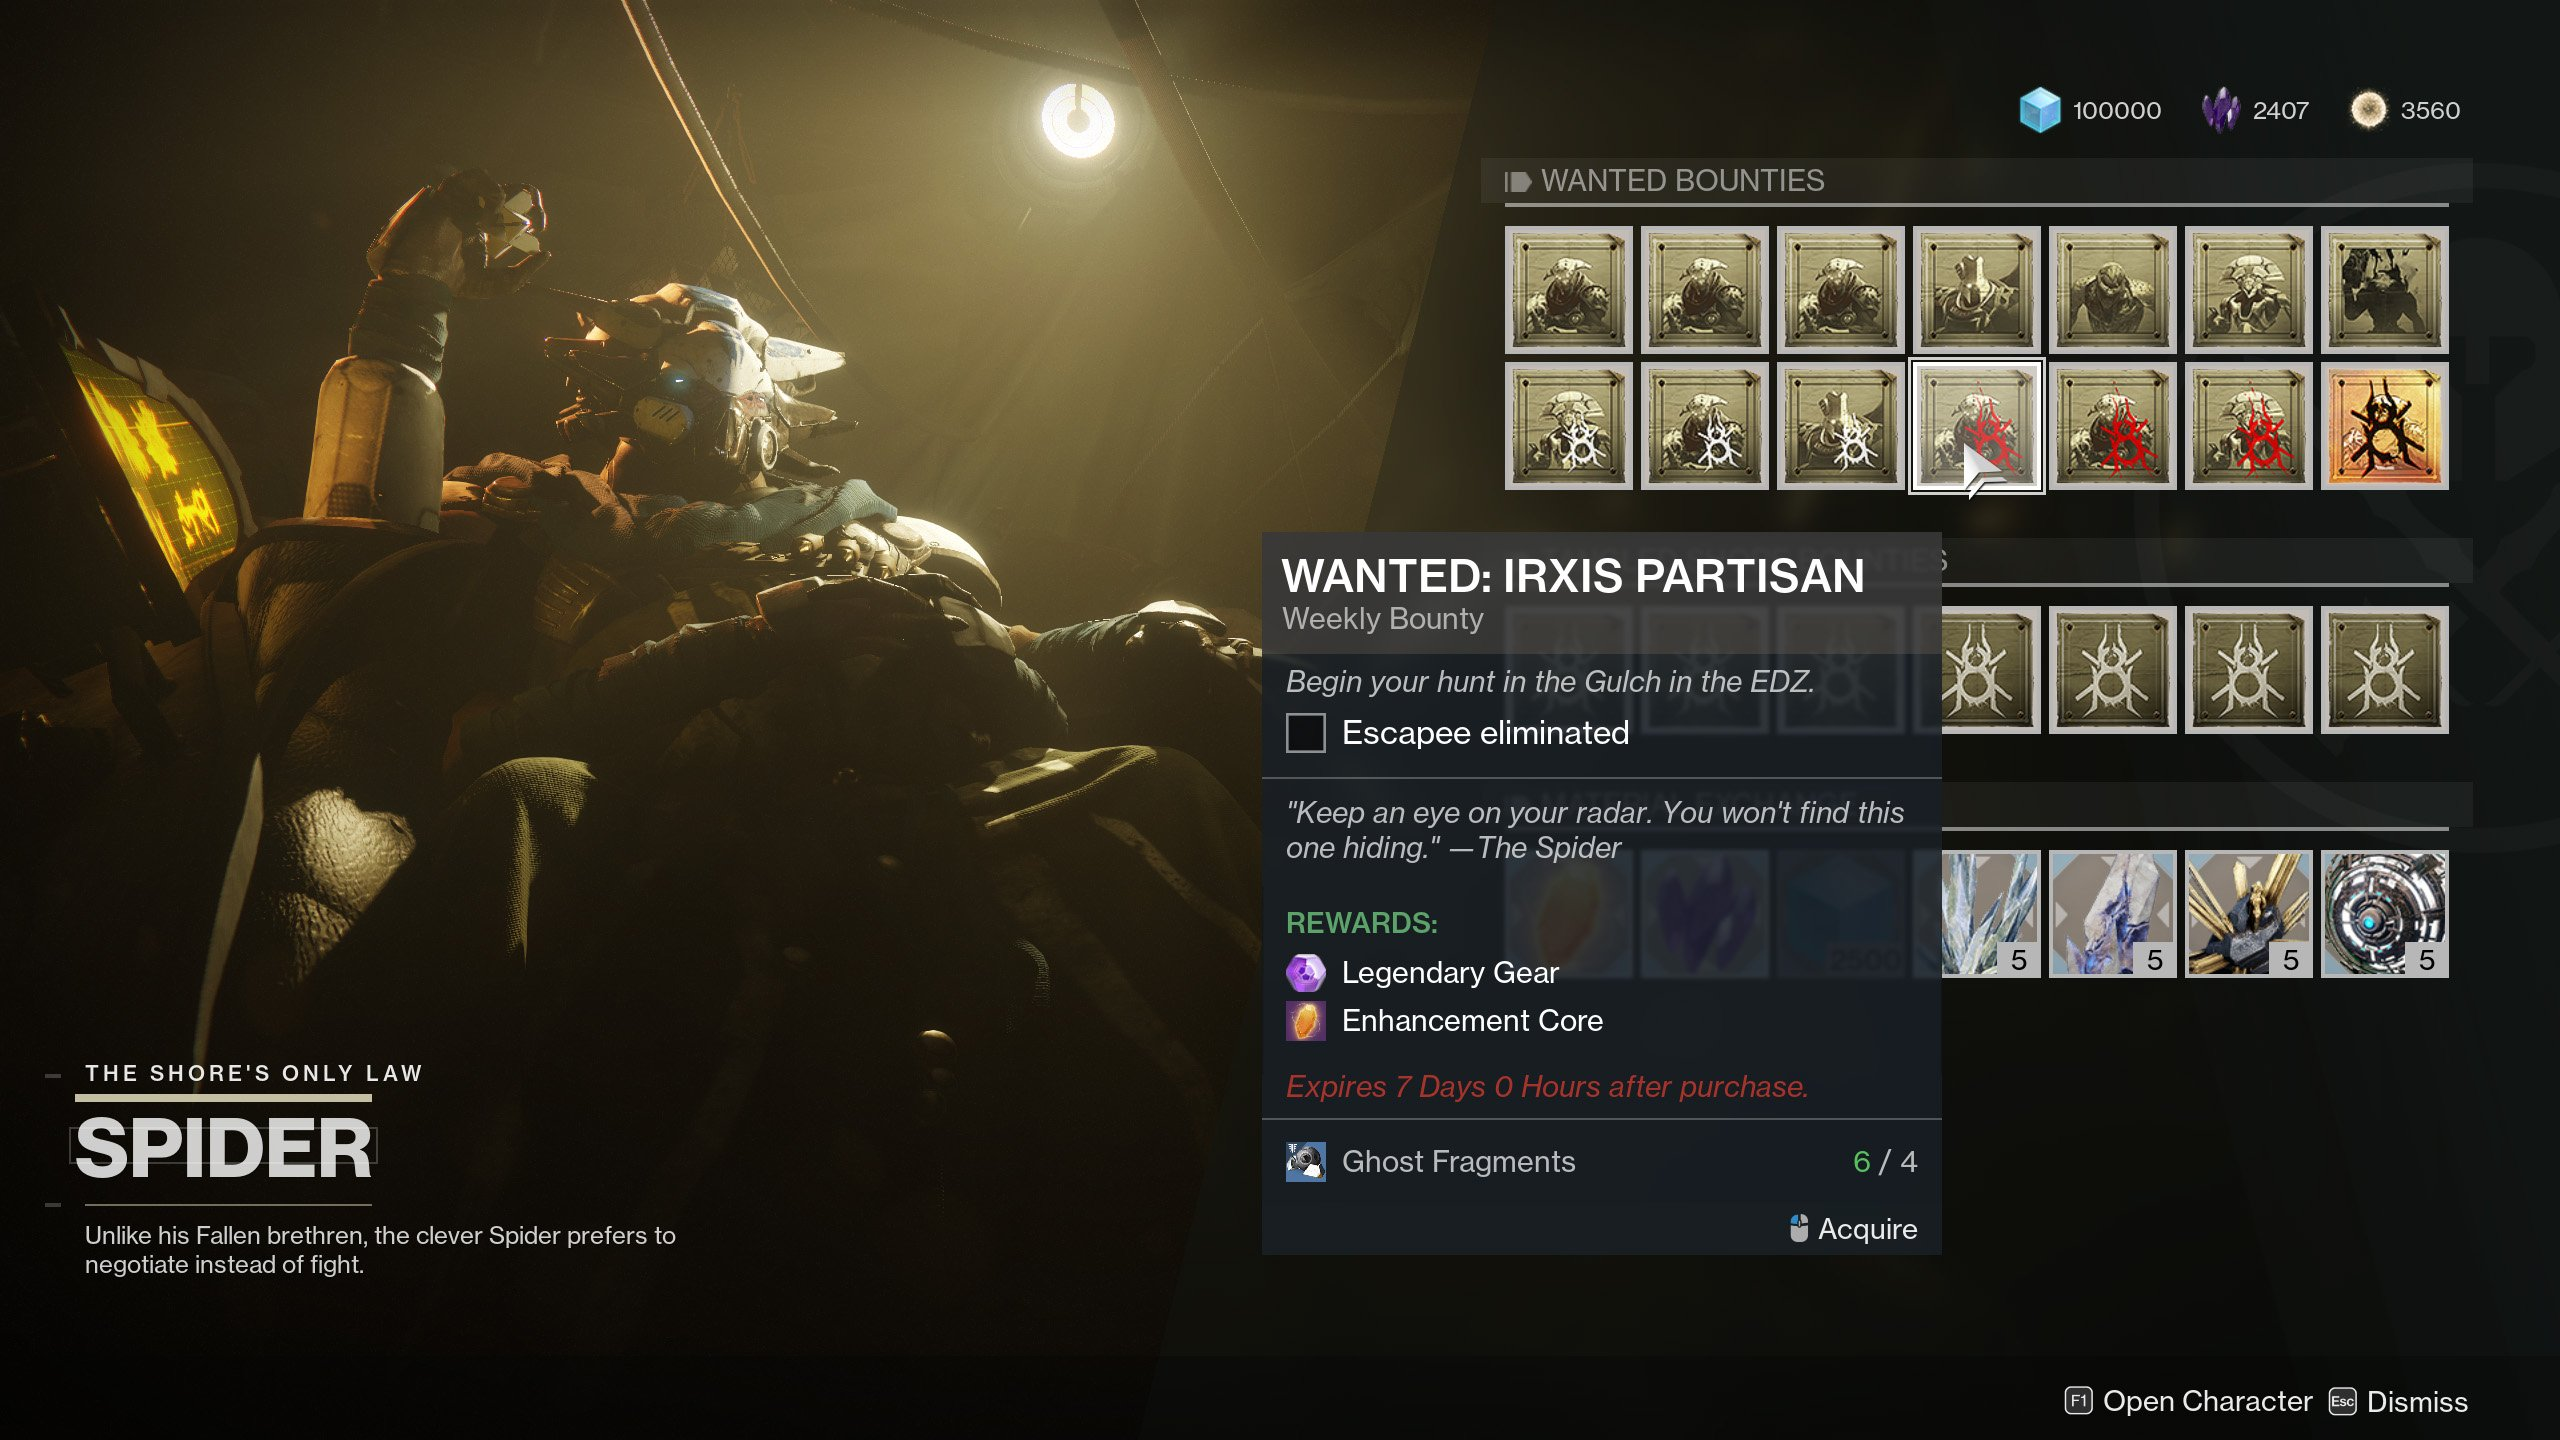 Wanted: Irxis Partisan - Destiny 2